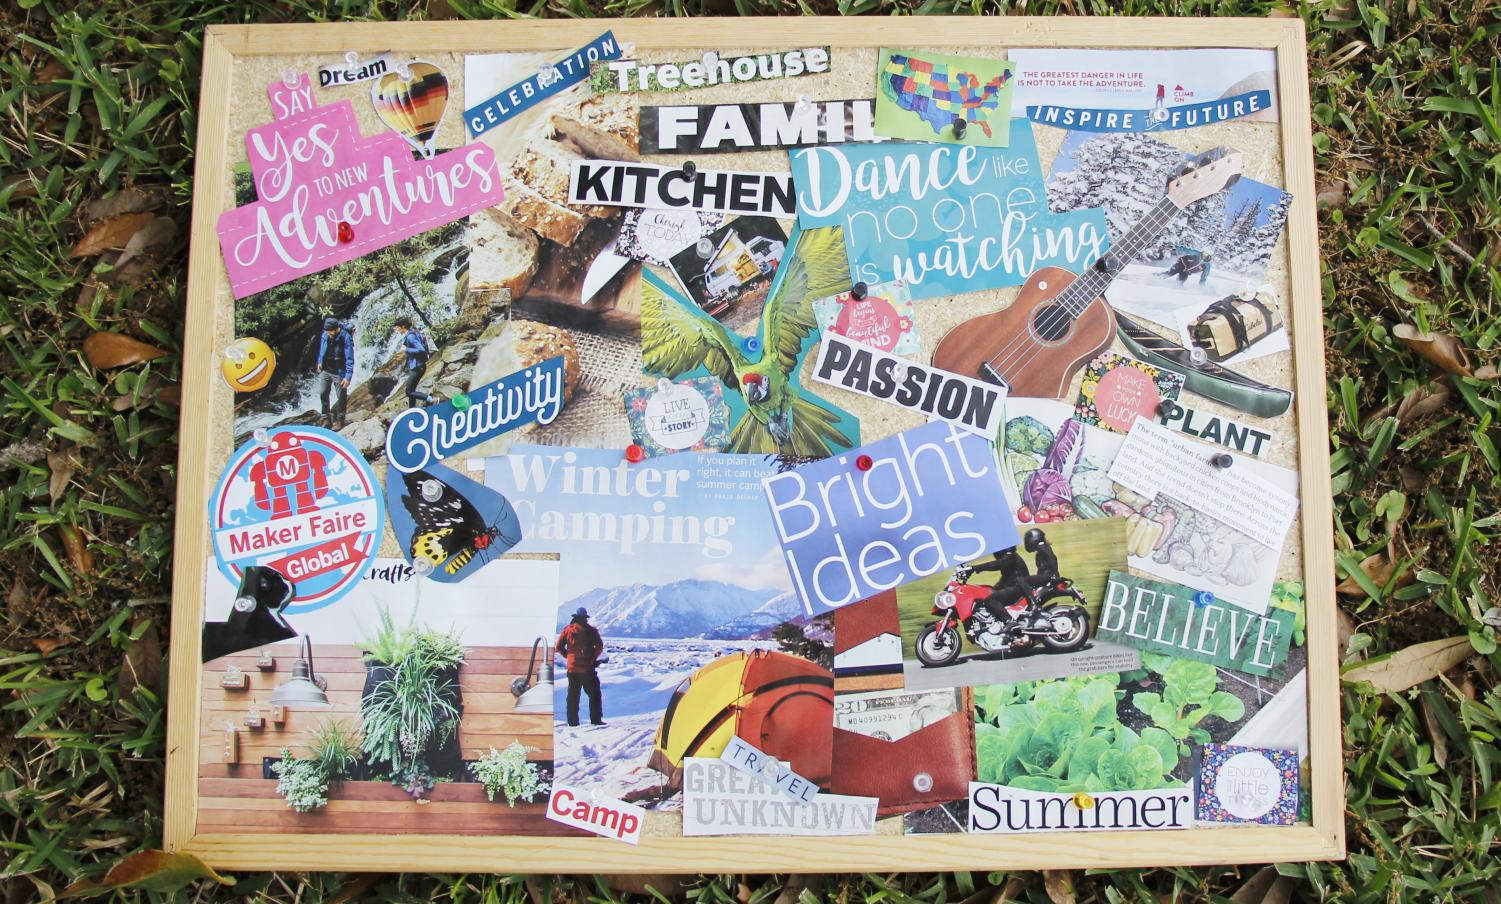 Vision boards offer a variety of options for students looking to set realistic goals. The collages can be used to plan for the future or as motivation to achieve their objectives.